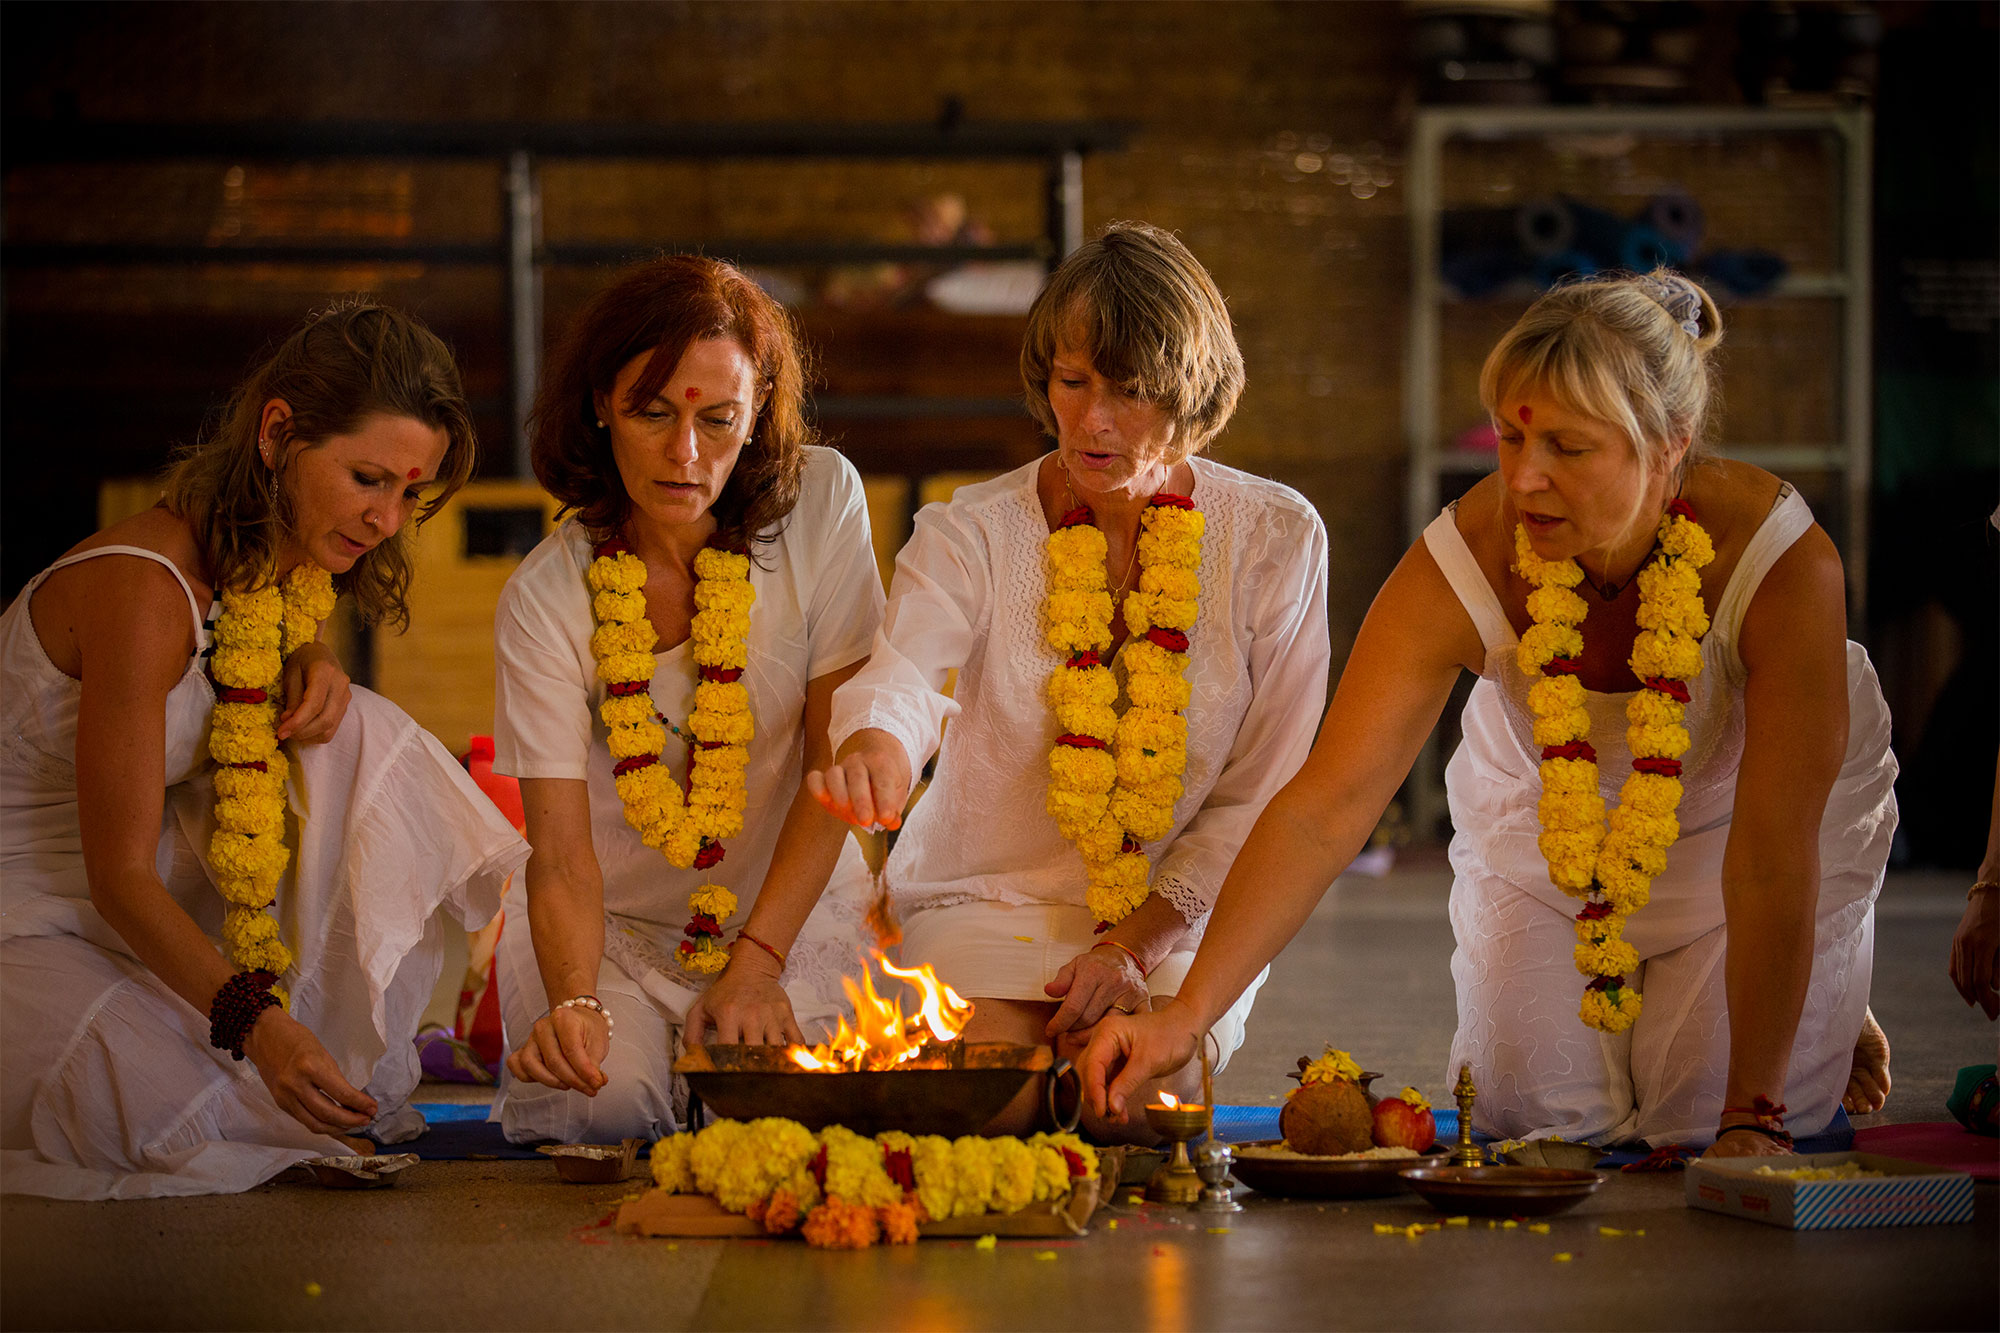 Aithein Ayurveda Massage School in Goa, India - Students in Fire Ceremony